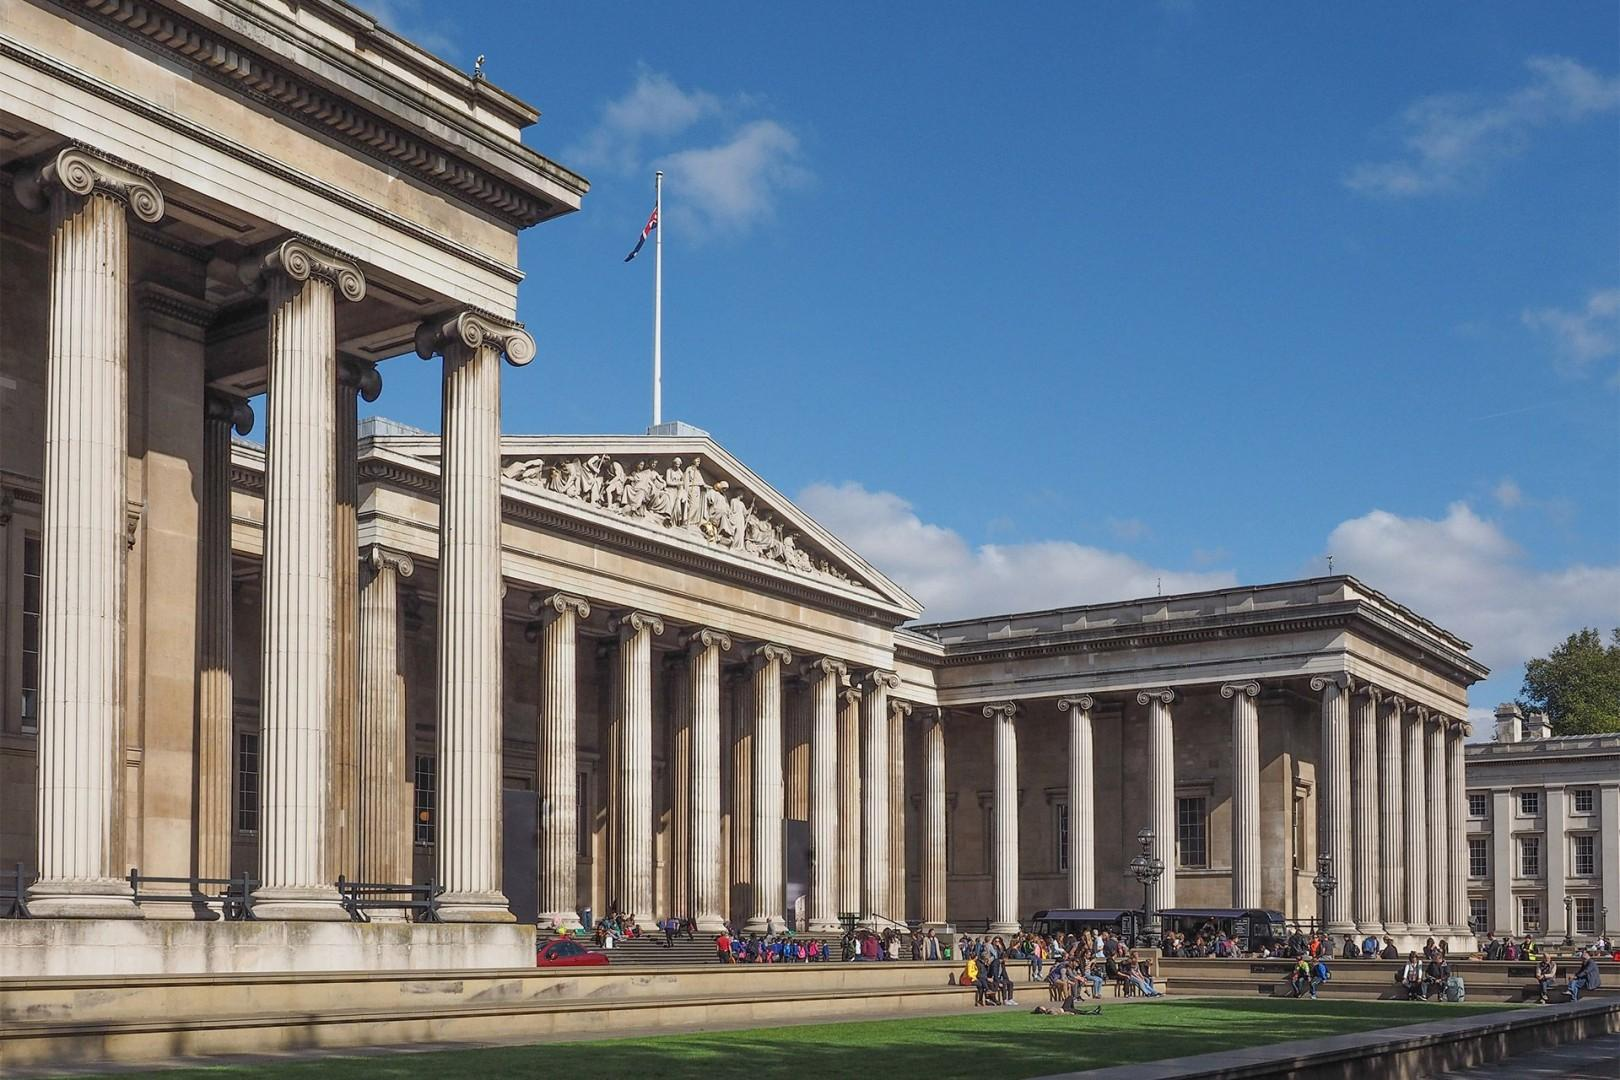 CMS-39-(Spend time with your family at the British Museum)-229463982-1508496808-FO-95442619-british-museum-london